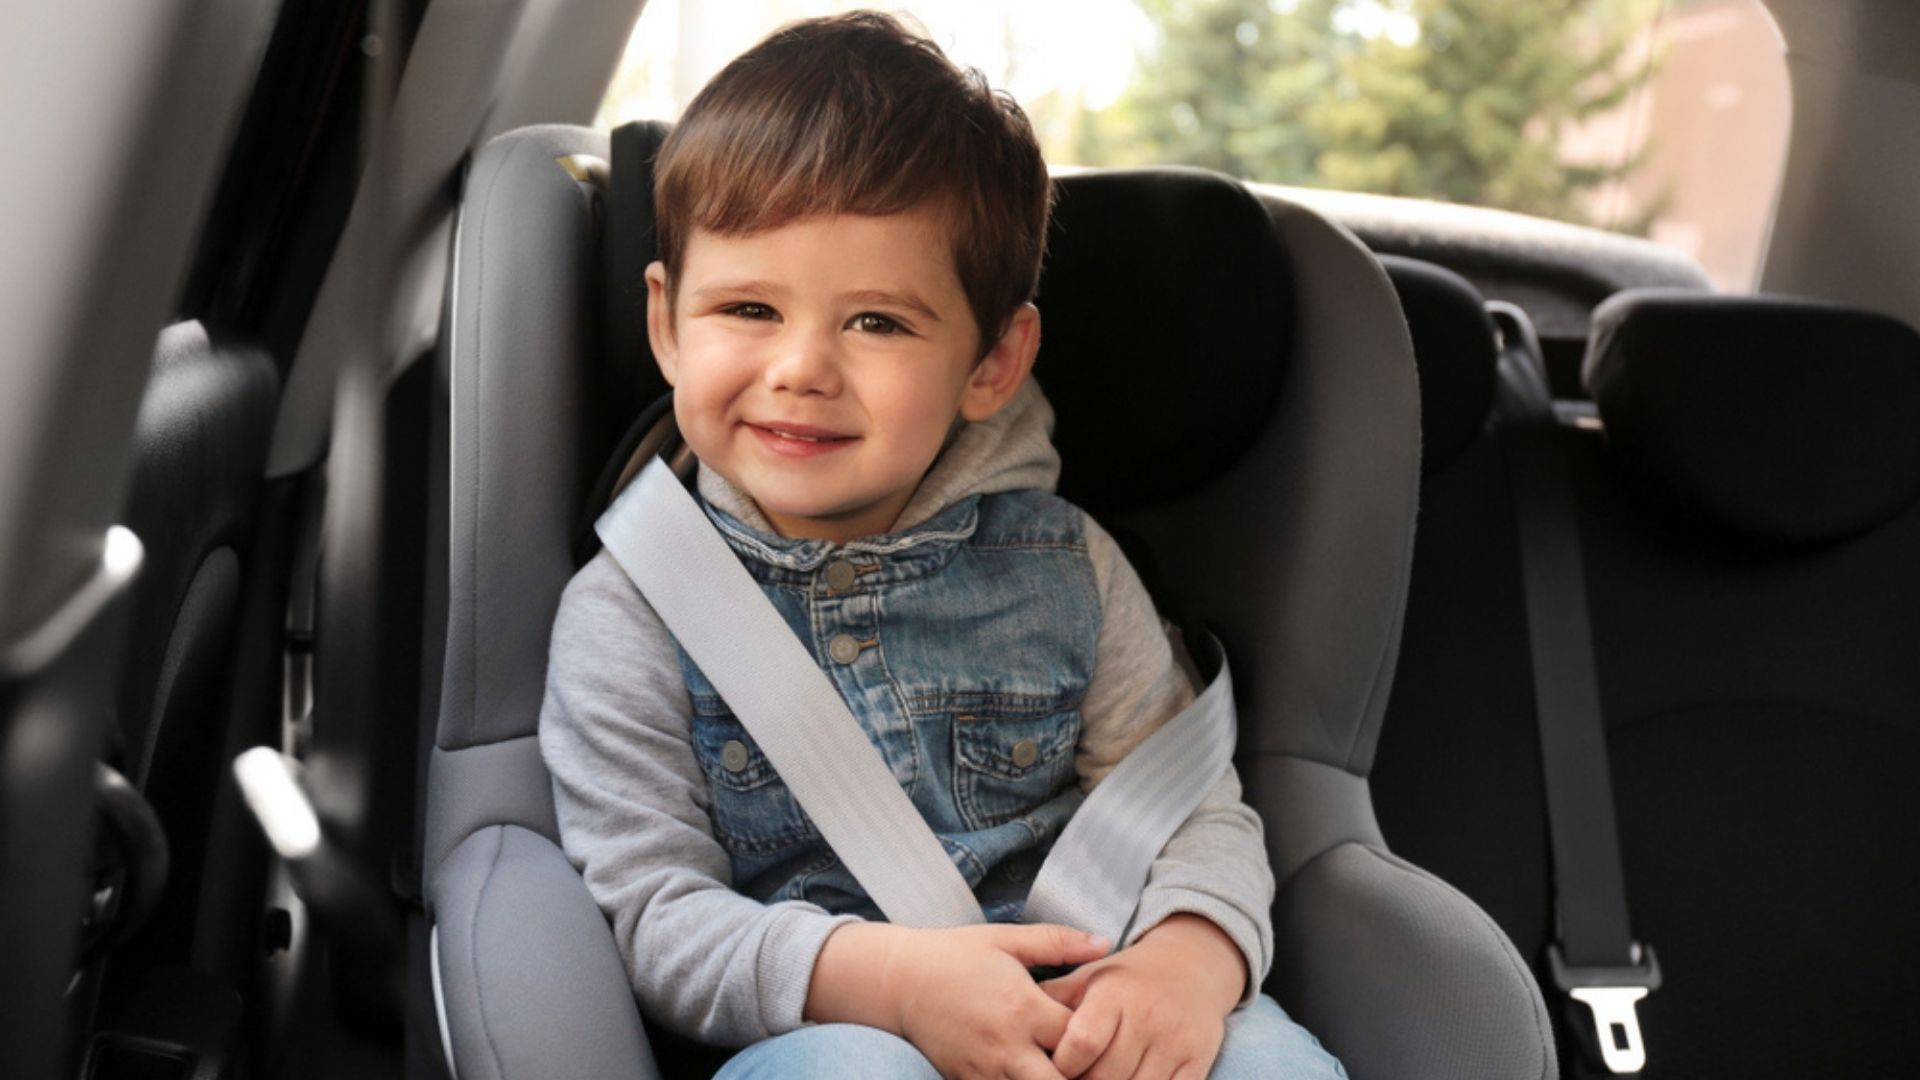 3 year old boy seat in the car seat and smiling